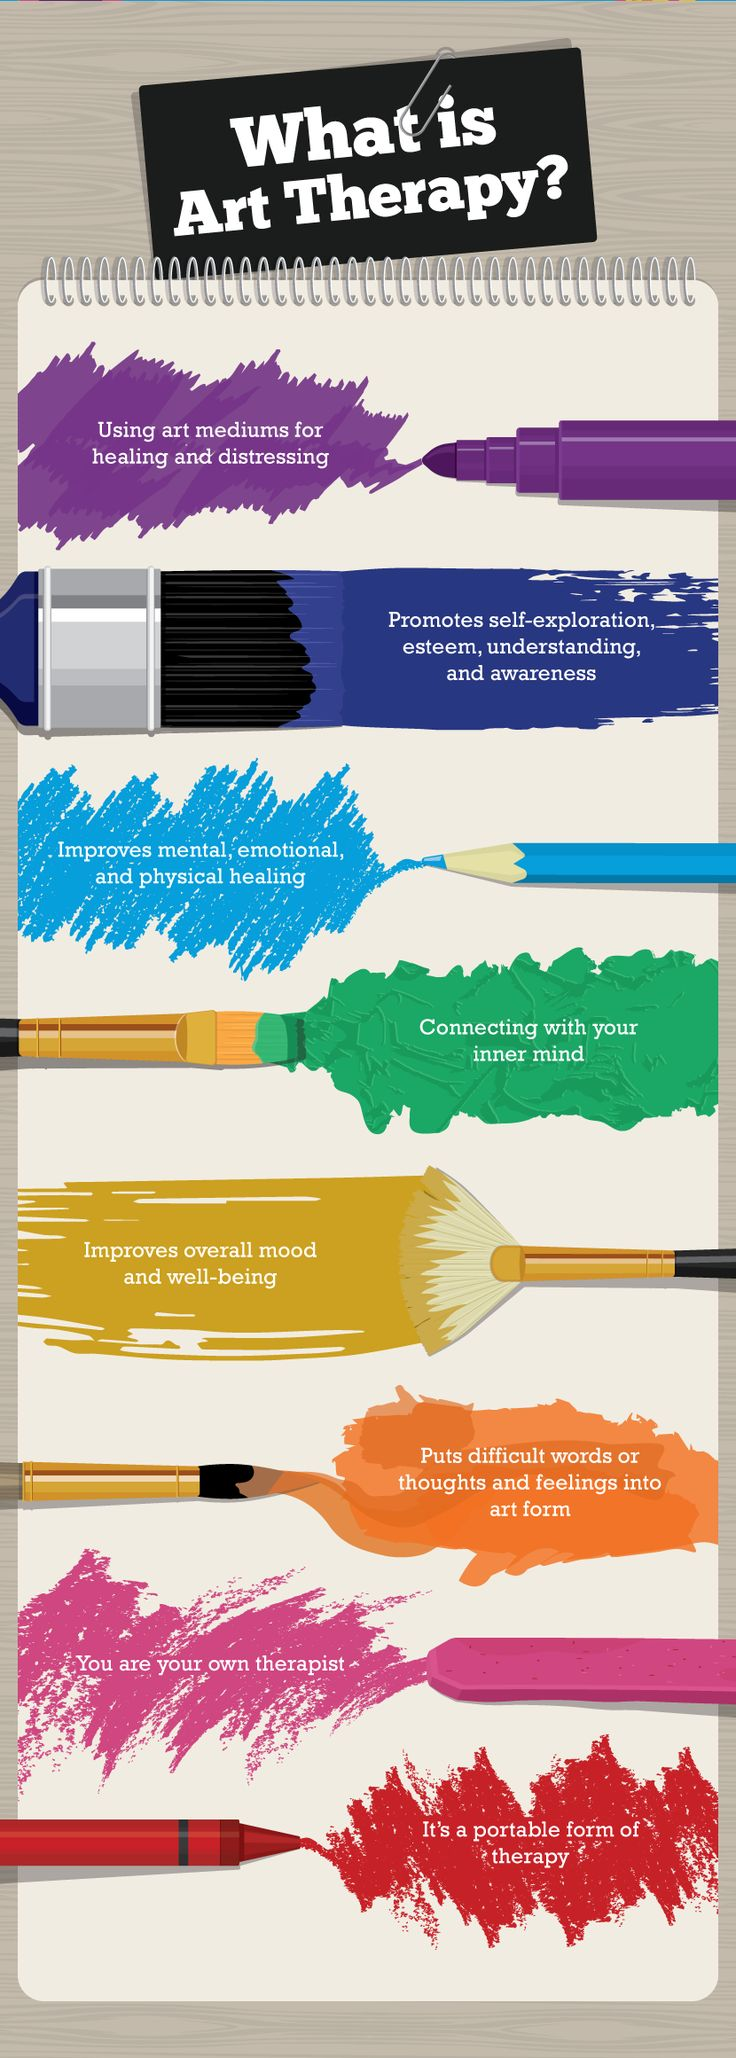 What is Art Therapy - Improving Your Everyday Life through Art Therapy